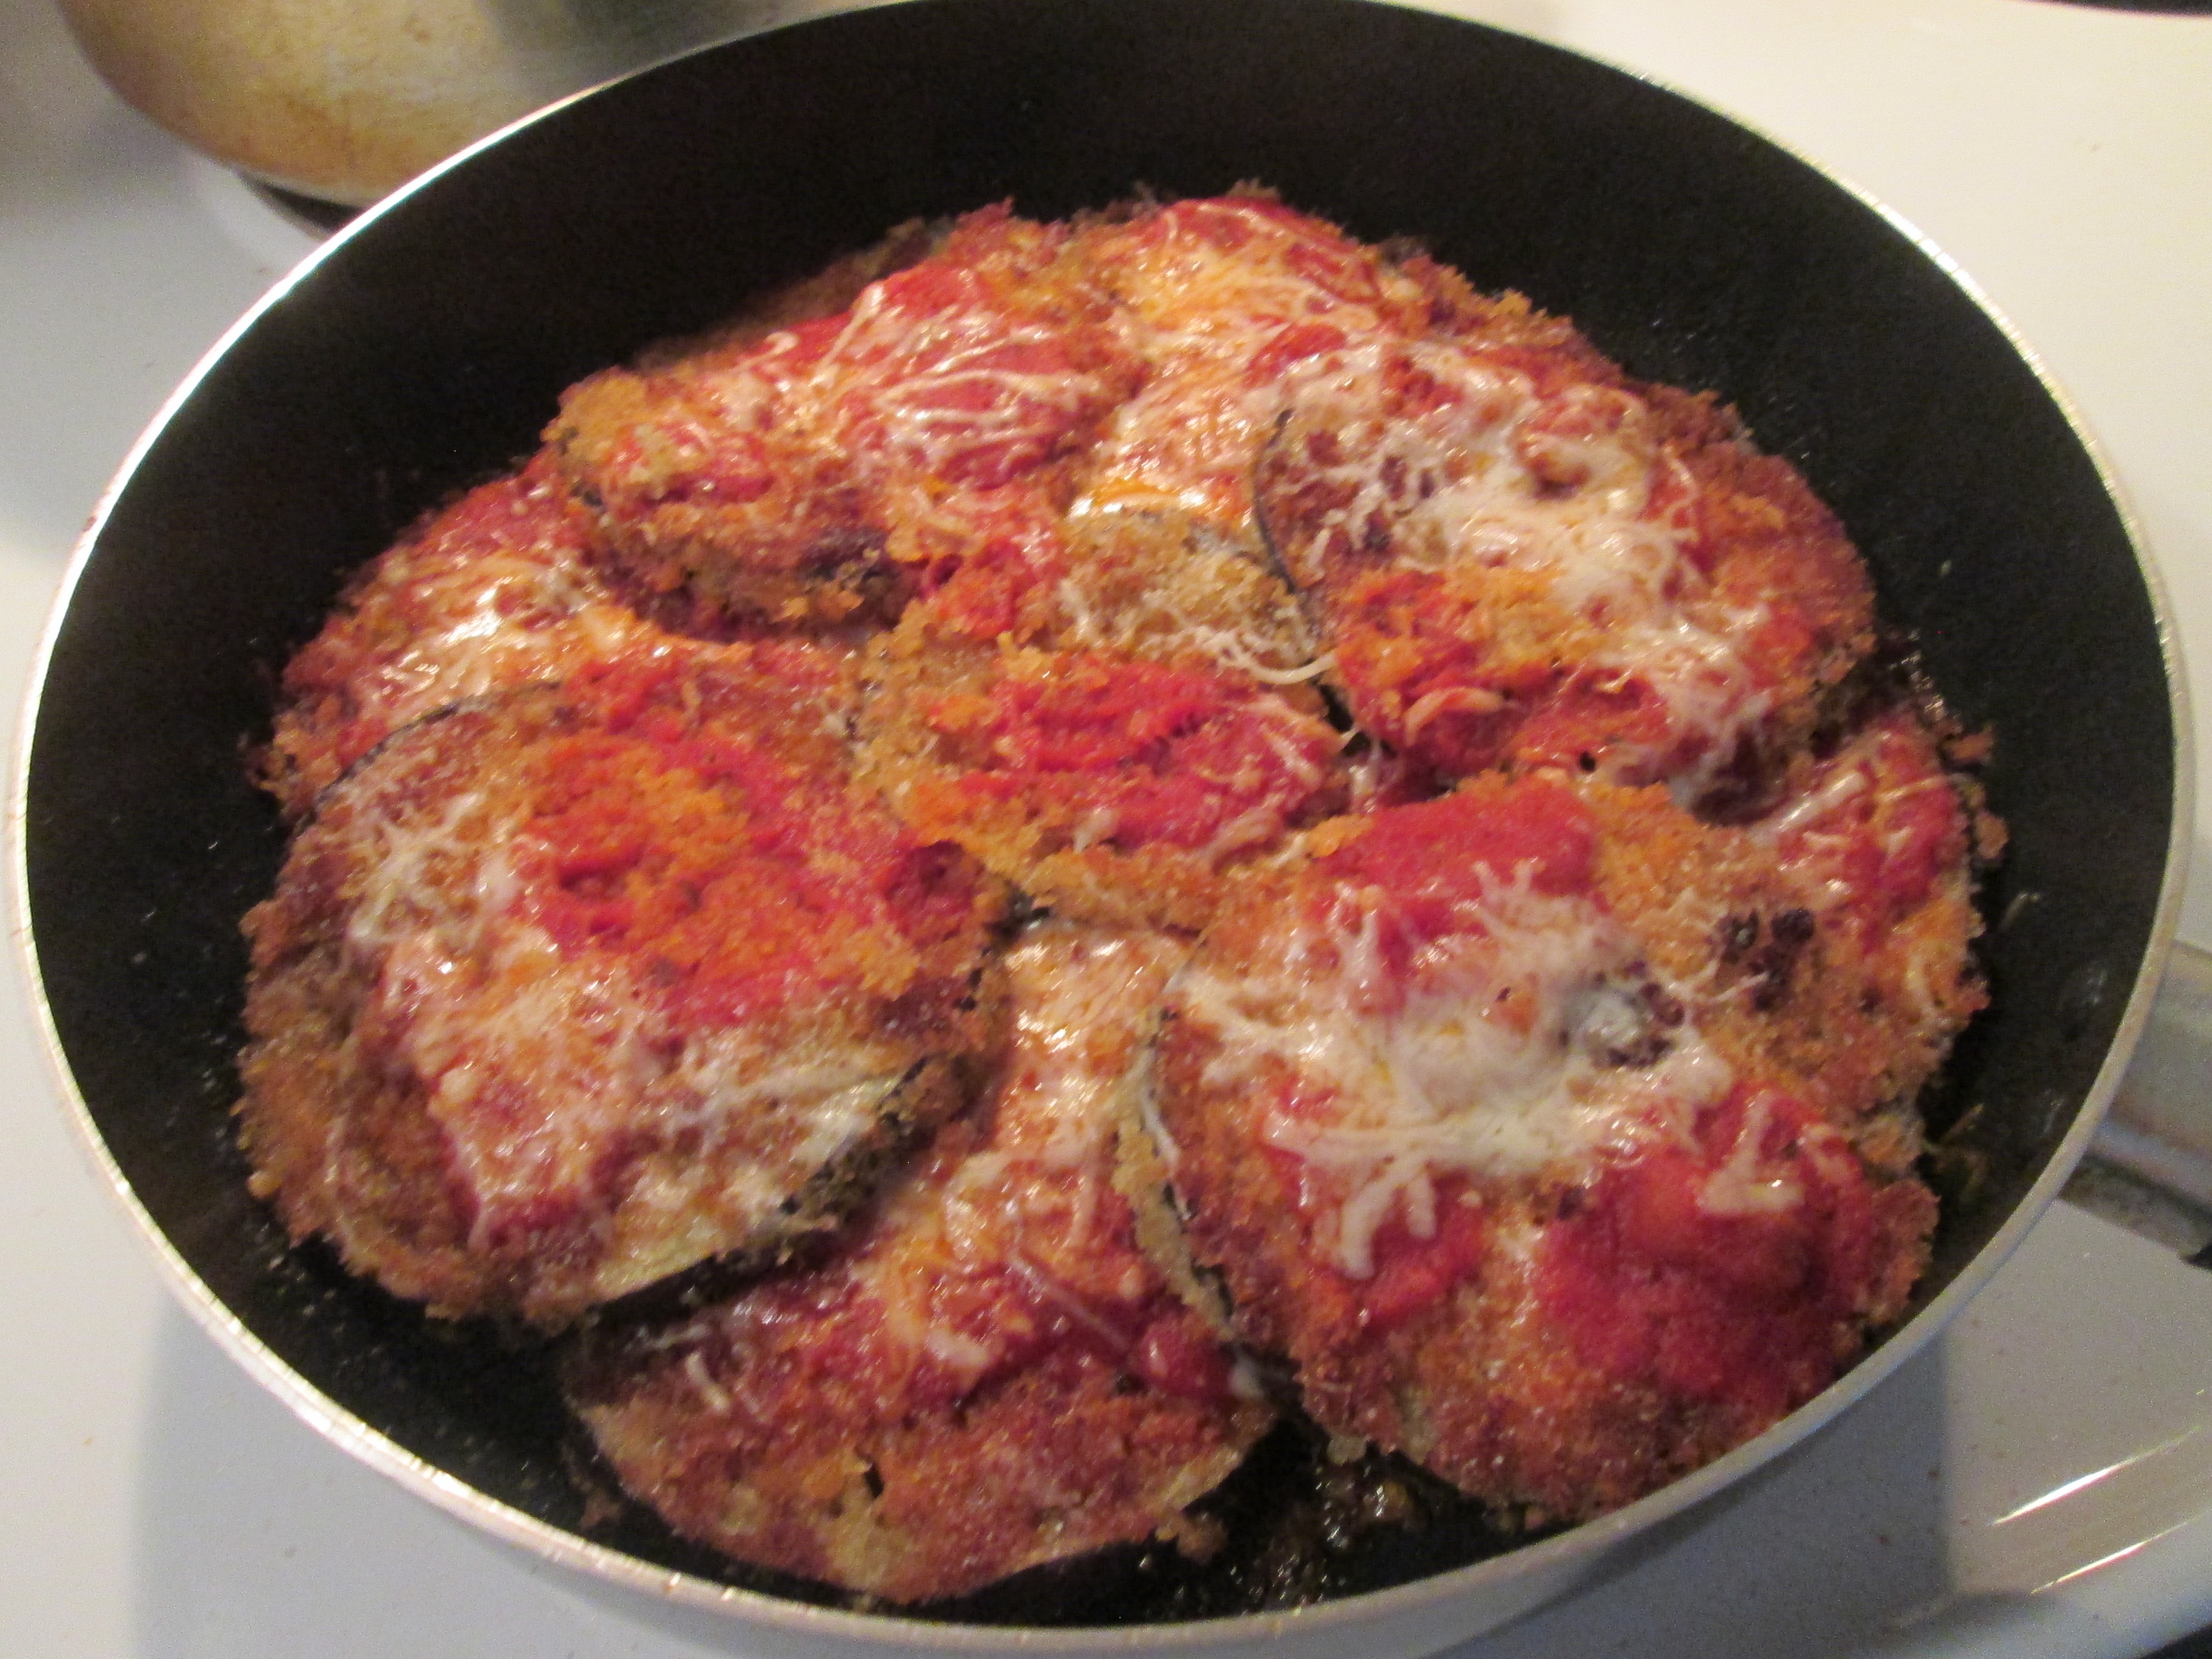 Skillet Eggplant Parmesan w/ Rustic French Bread